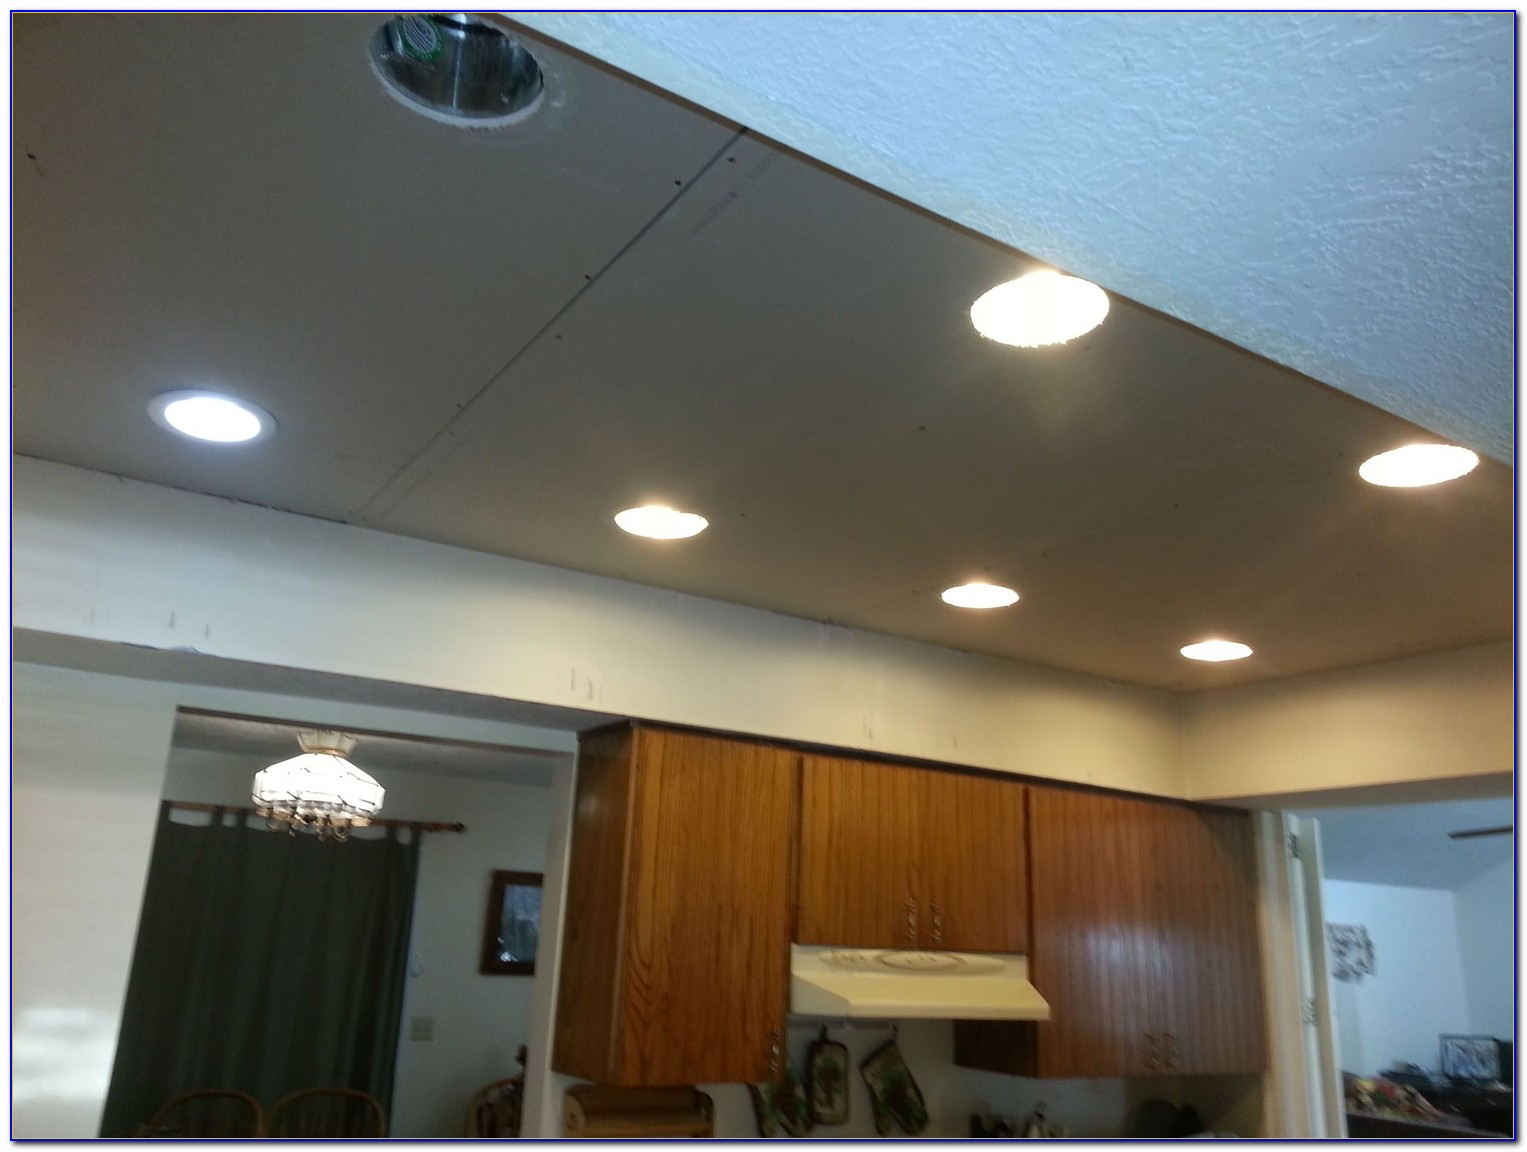 Installing Fluorescent Lights In Drop Ceiling